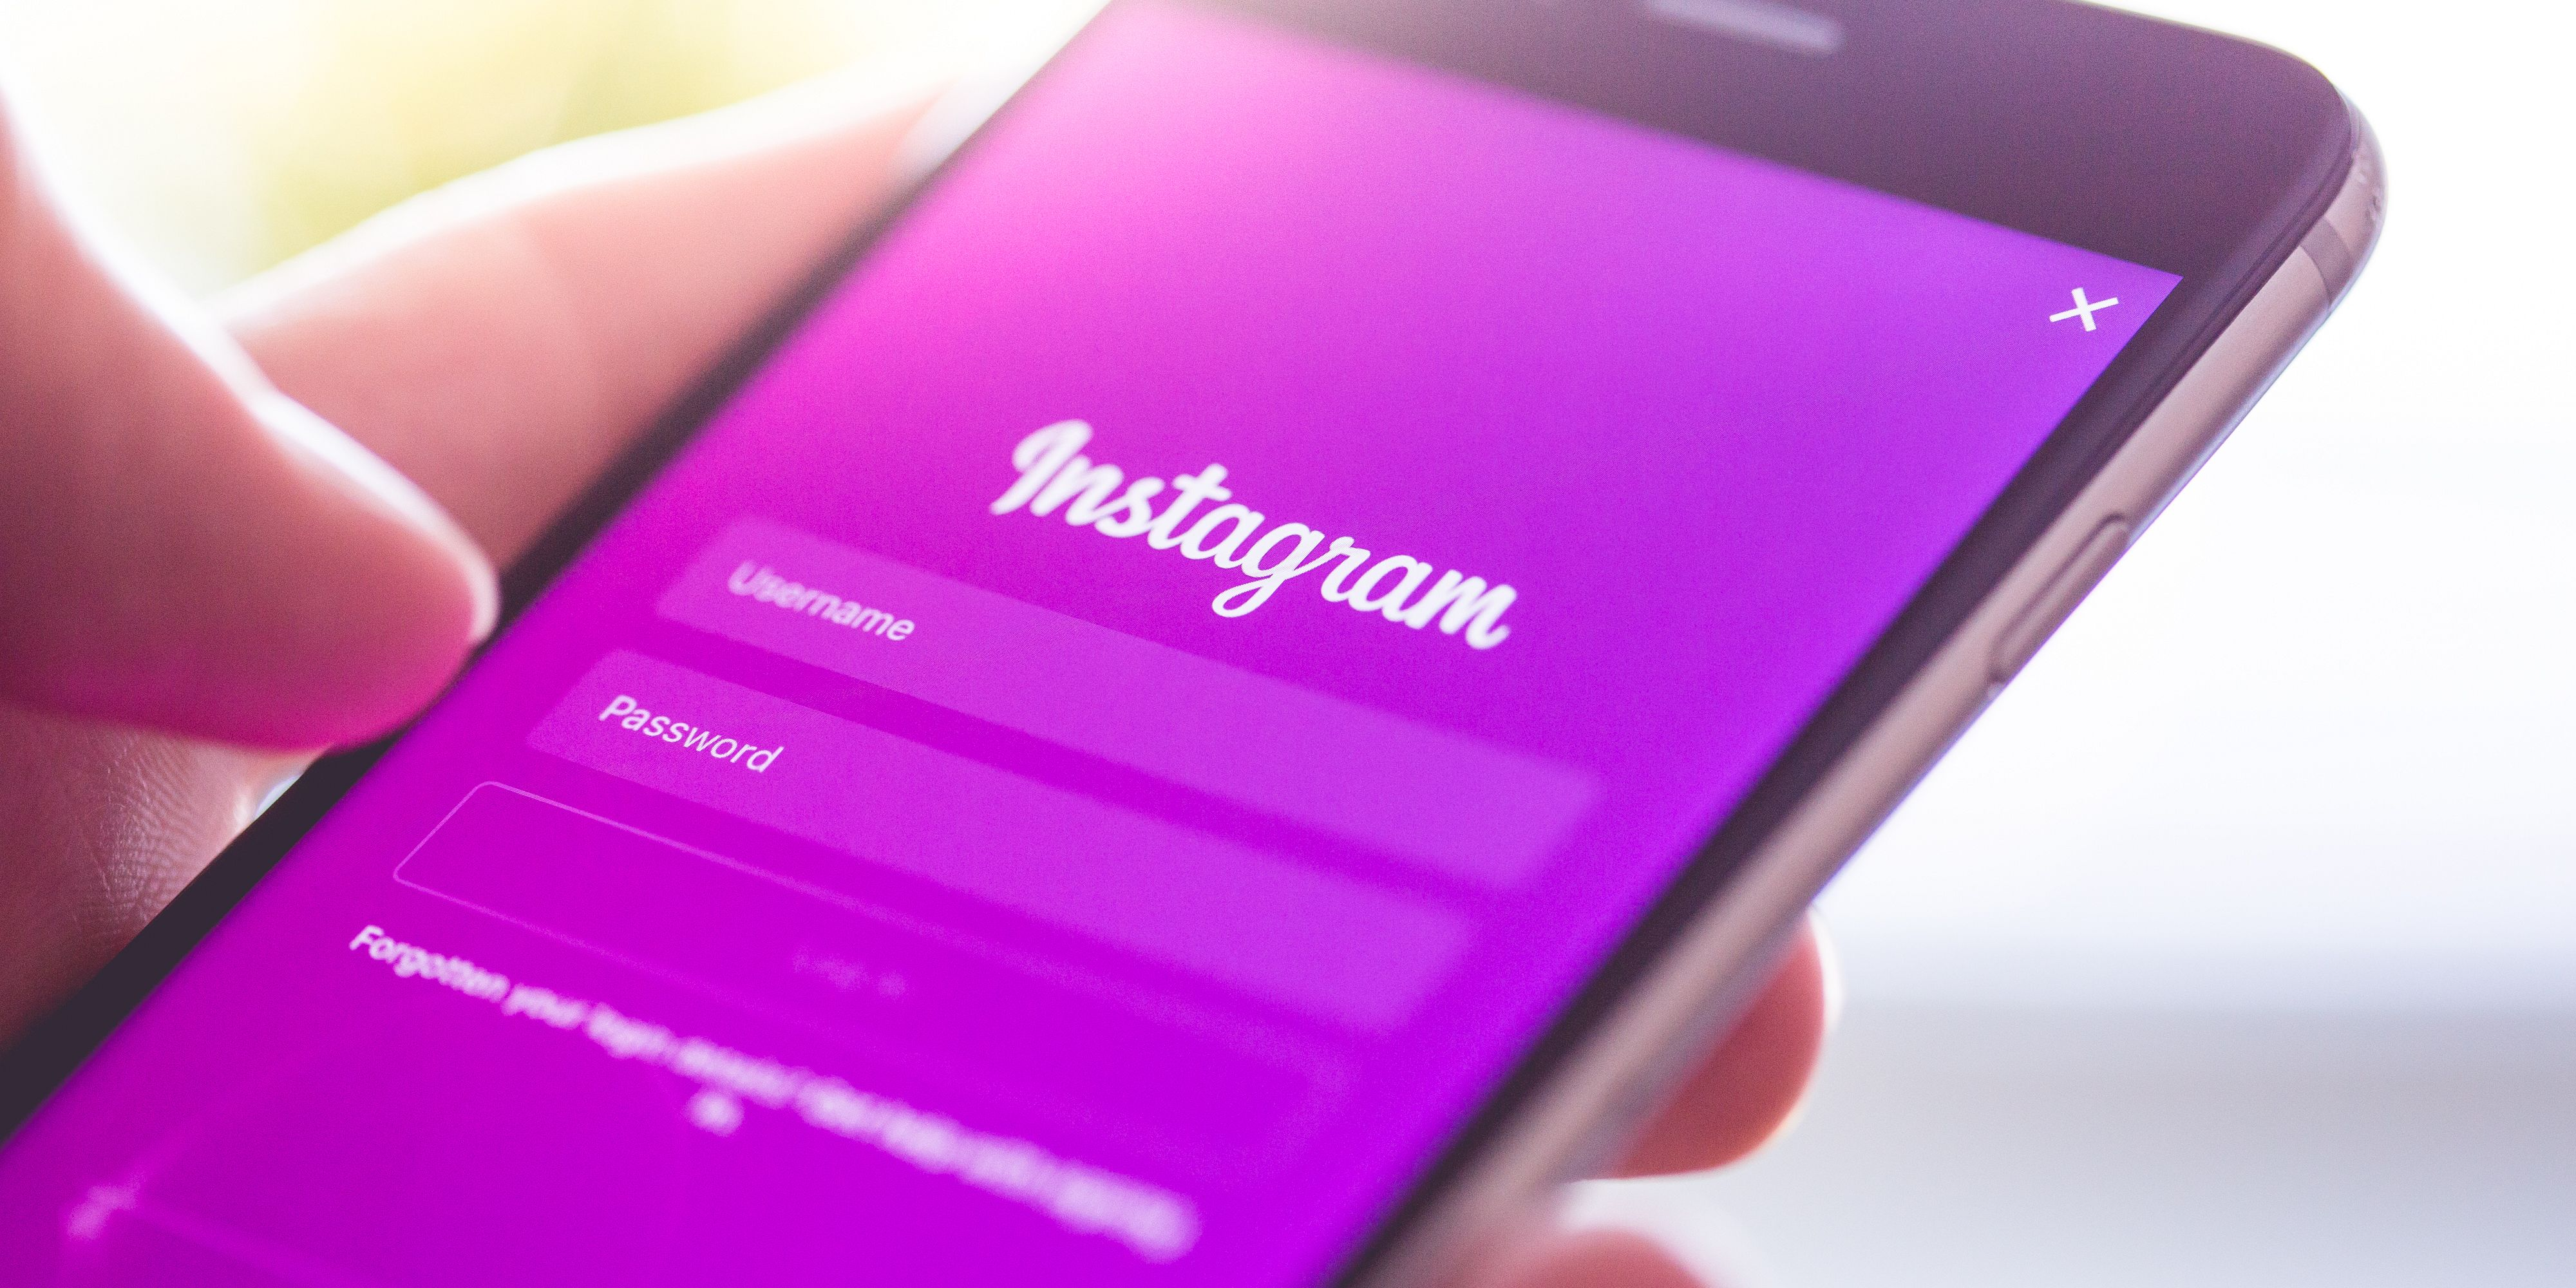 The Ins and Outs of Advertising on Instagram